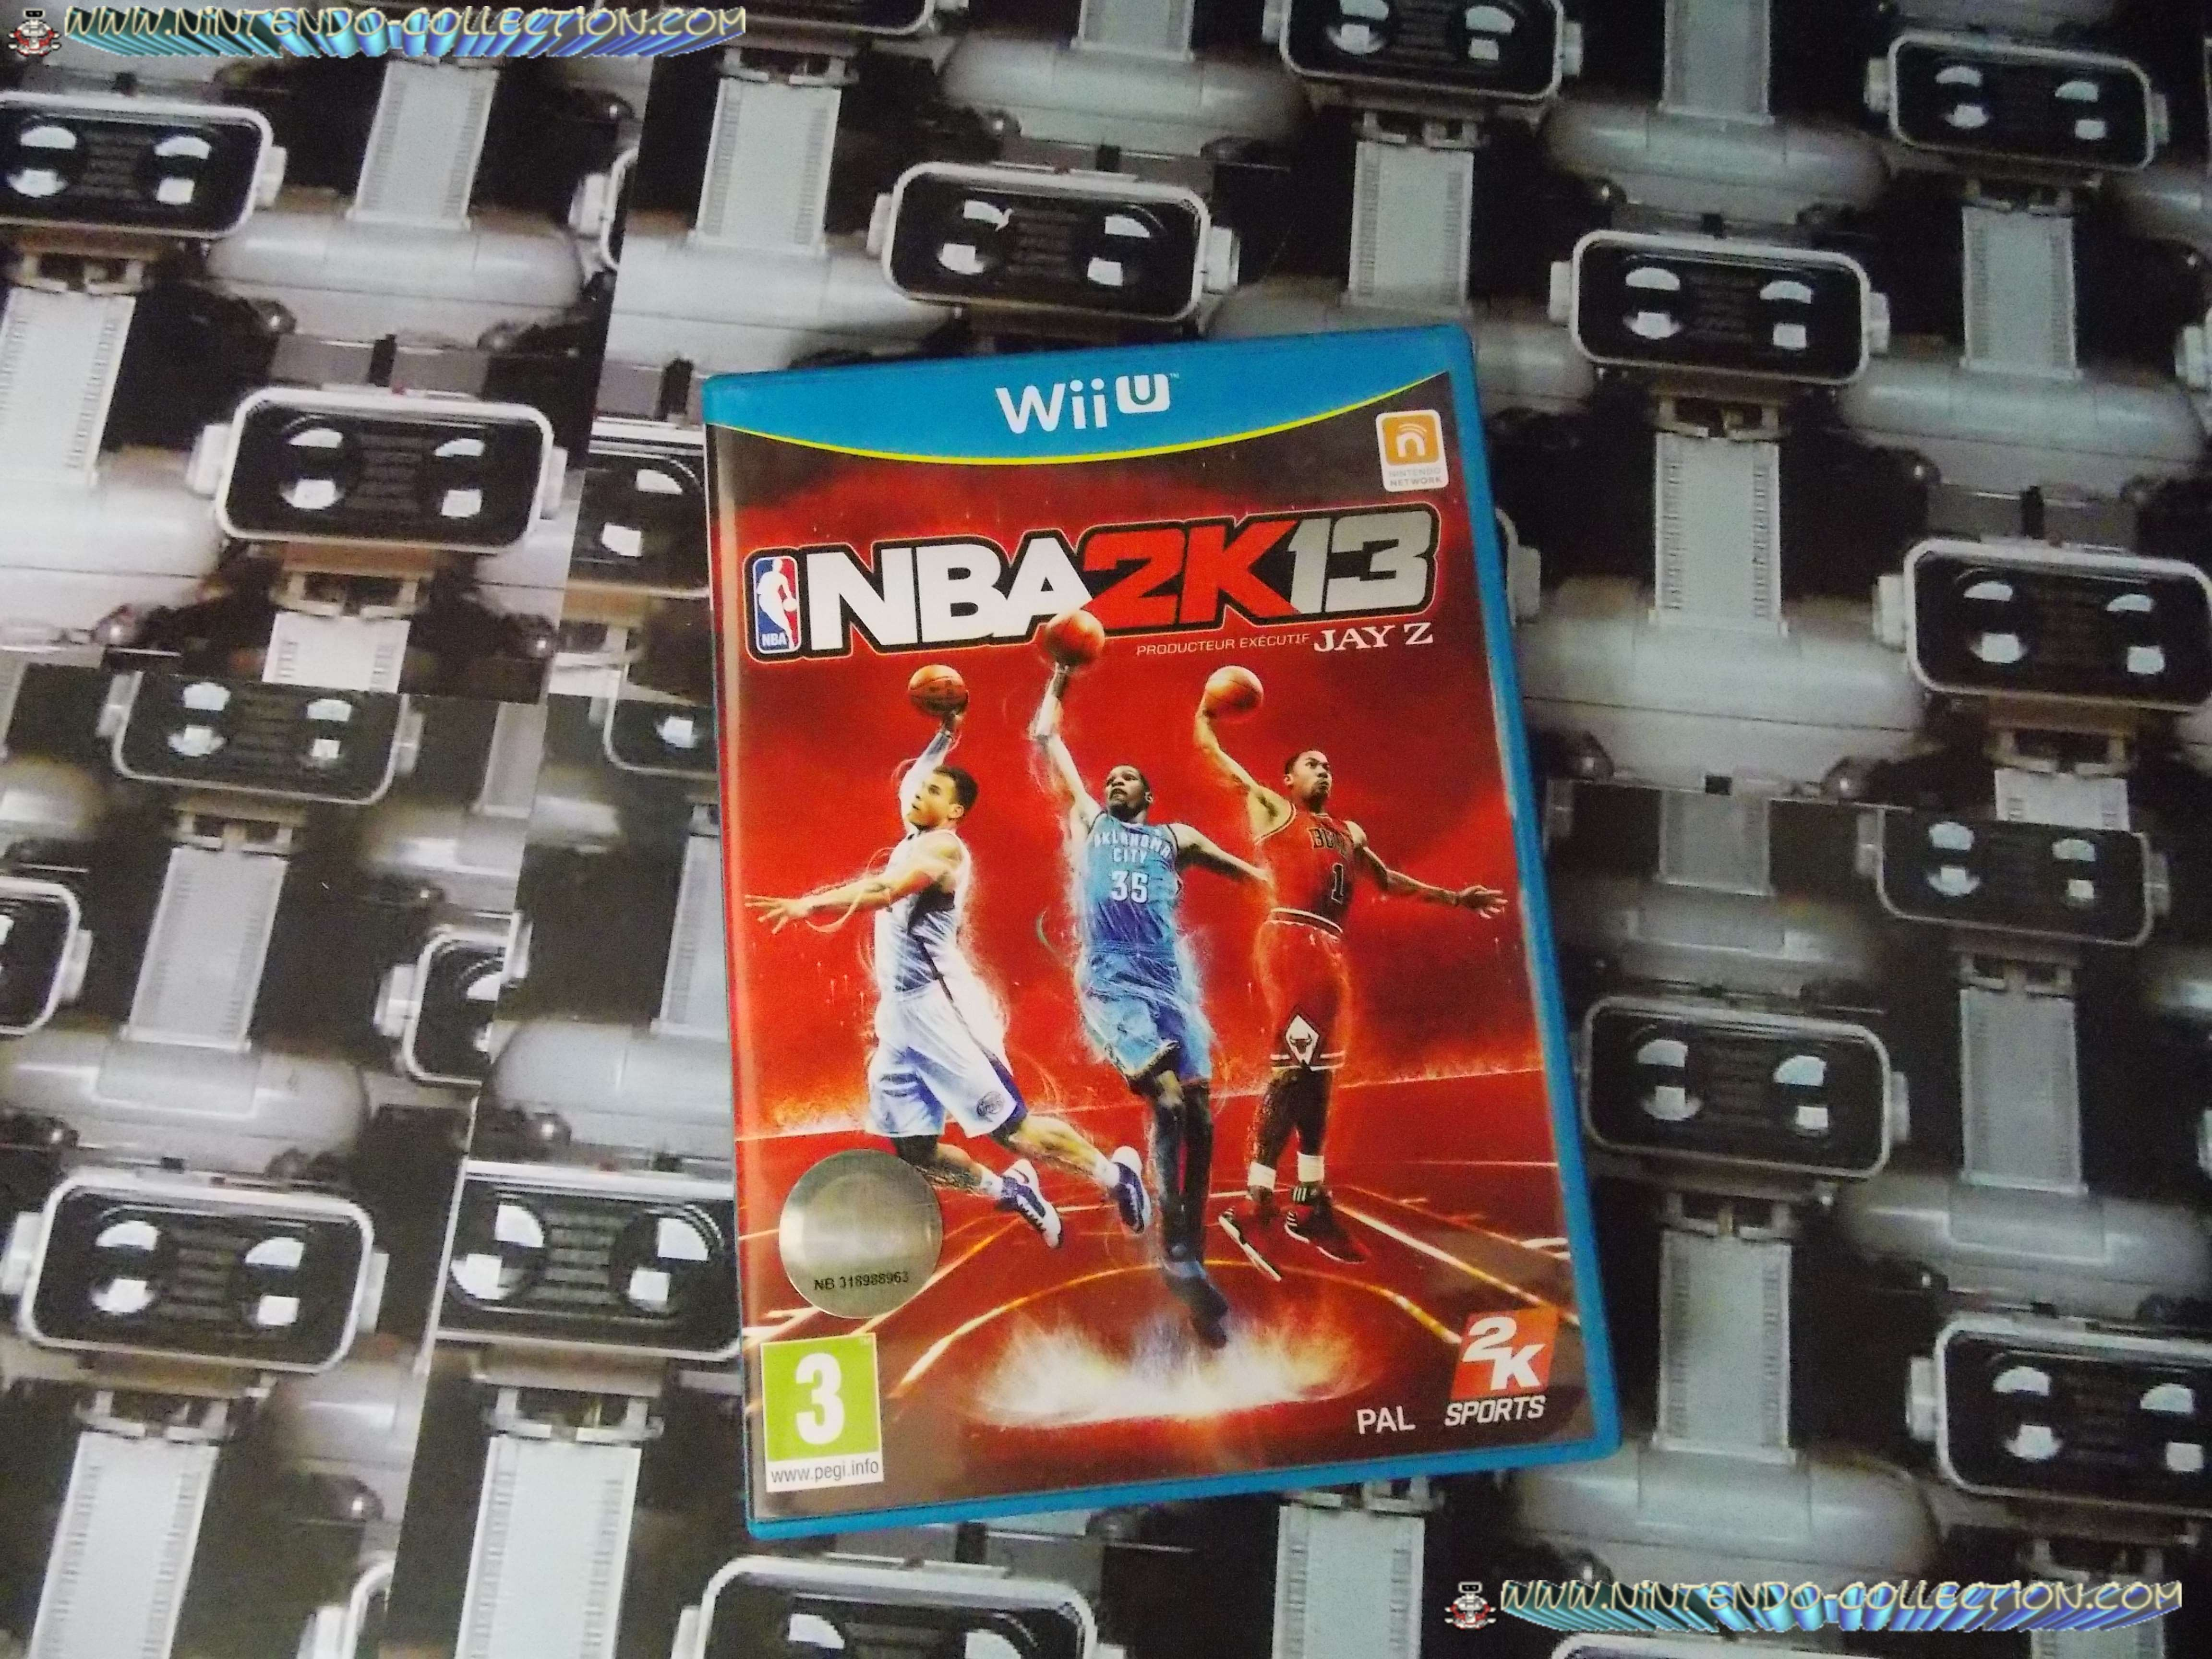 www.nintendo-collection.com - Wii U Game Jeu NBA 2K13